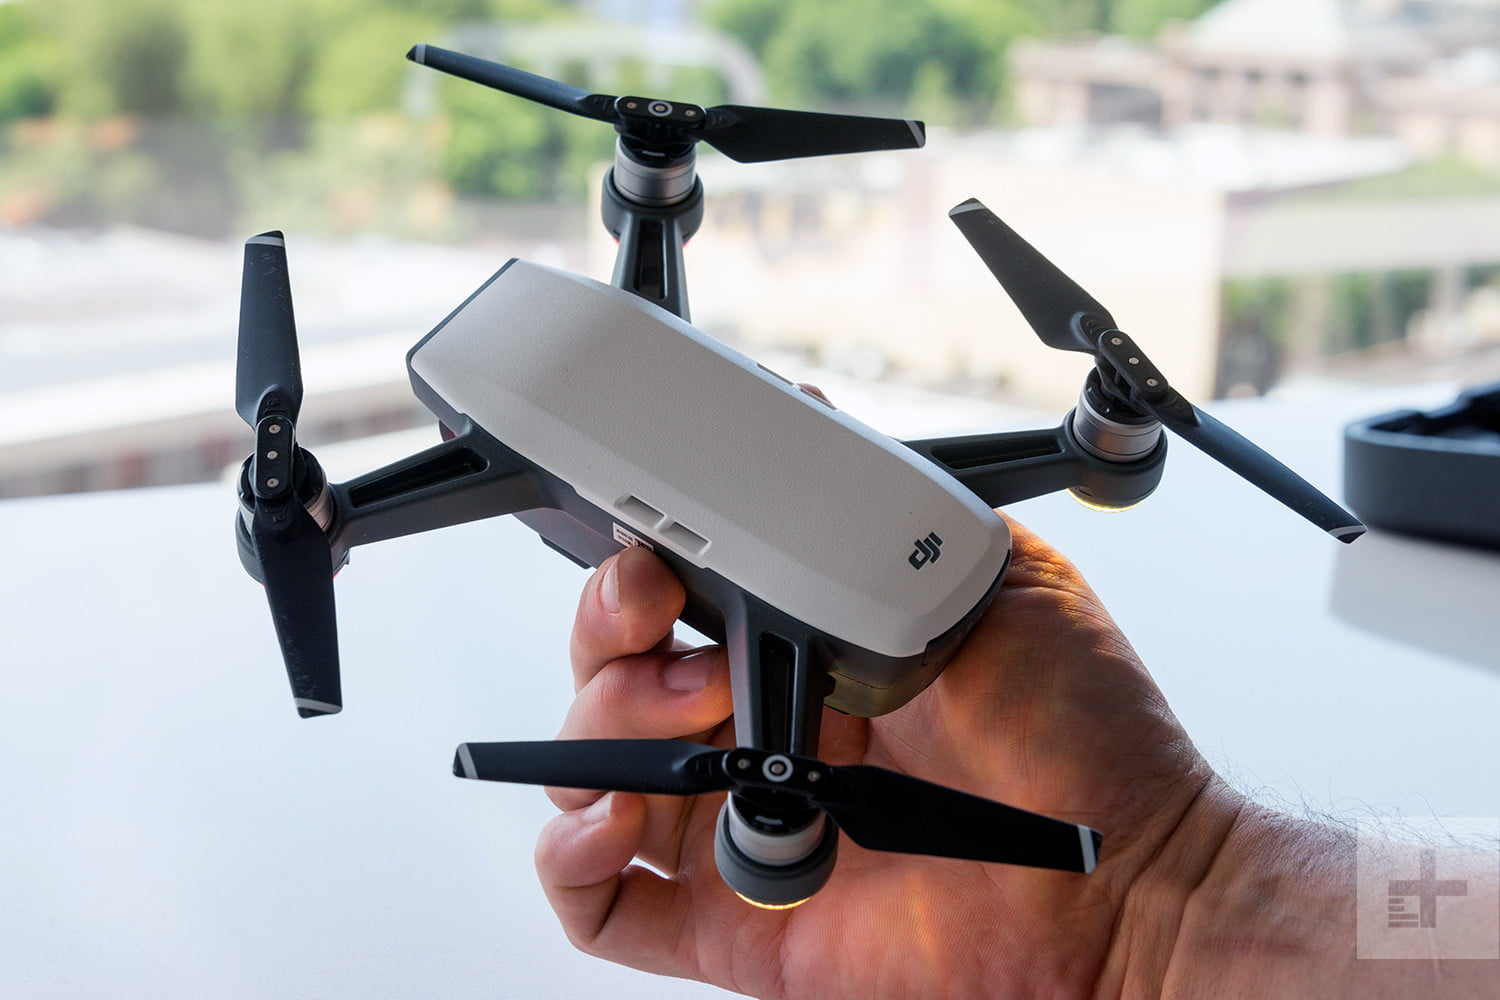 Dji Spark Drone Review 12